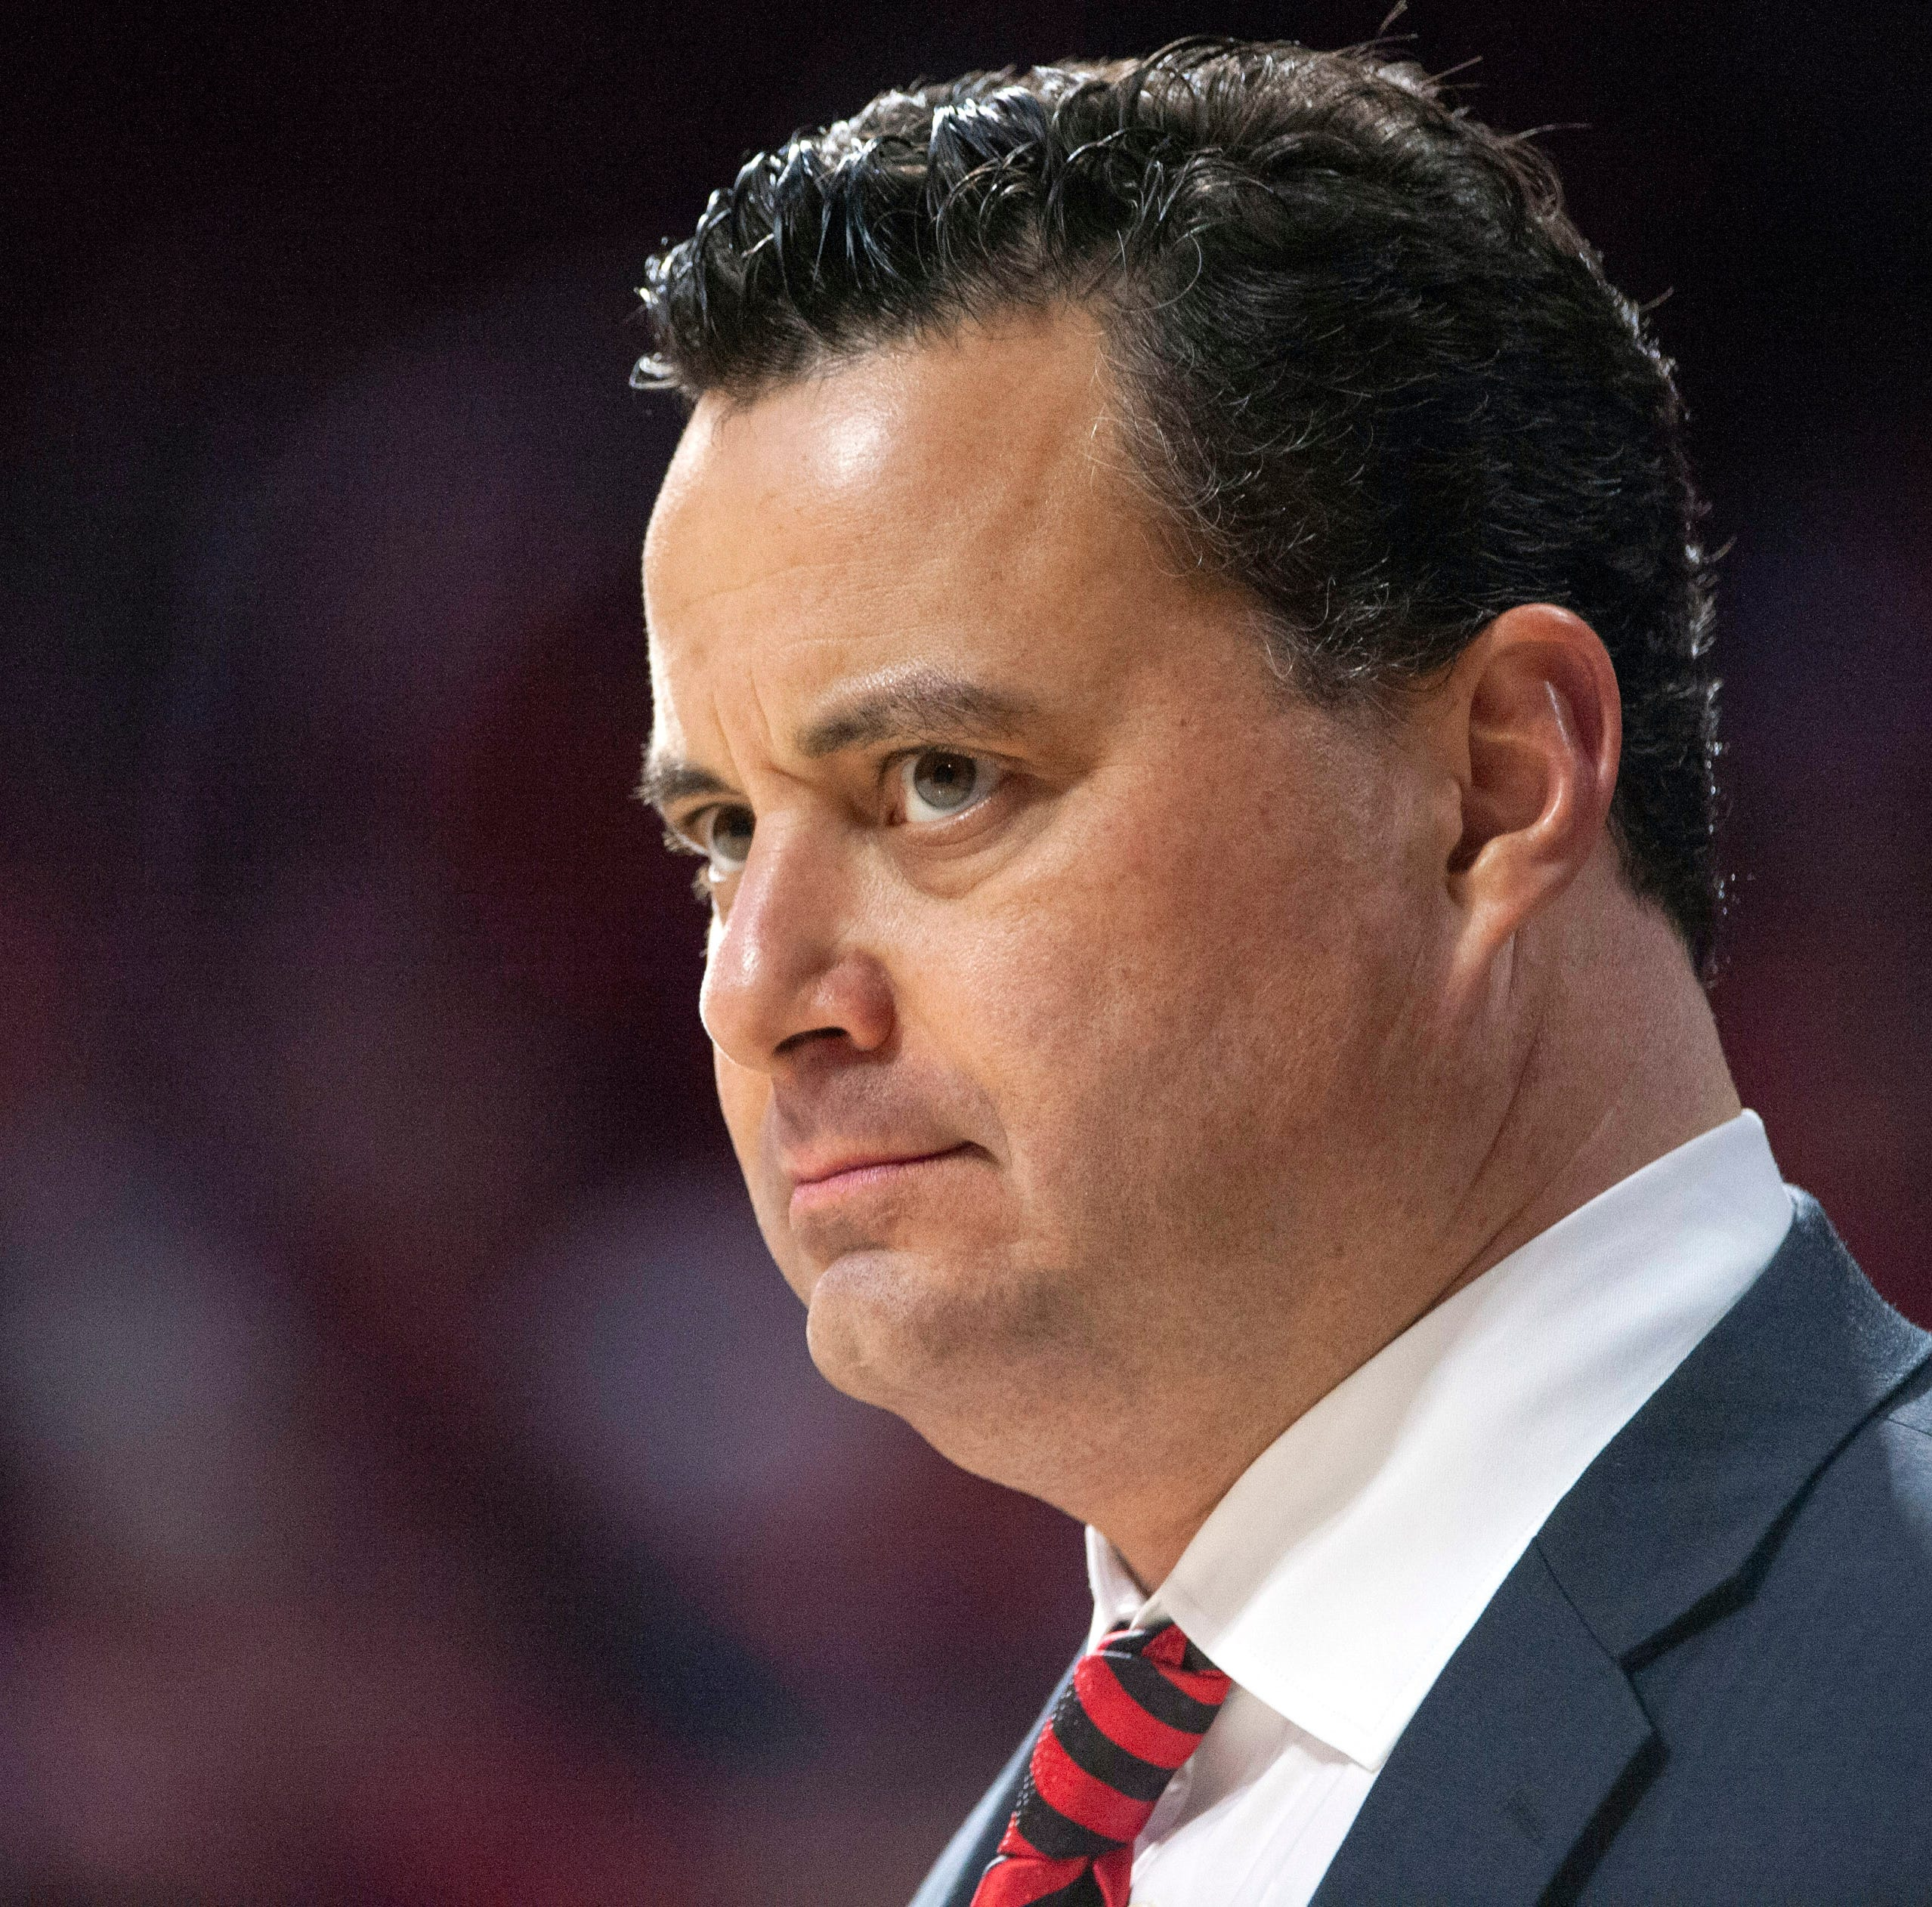 Sean Miller: Has anybody considered the Arizona basketball coach might not be dirty?